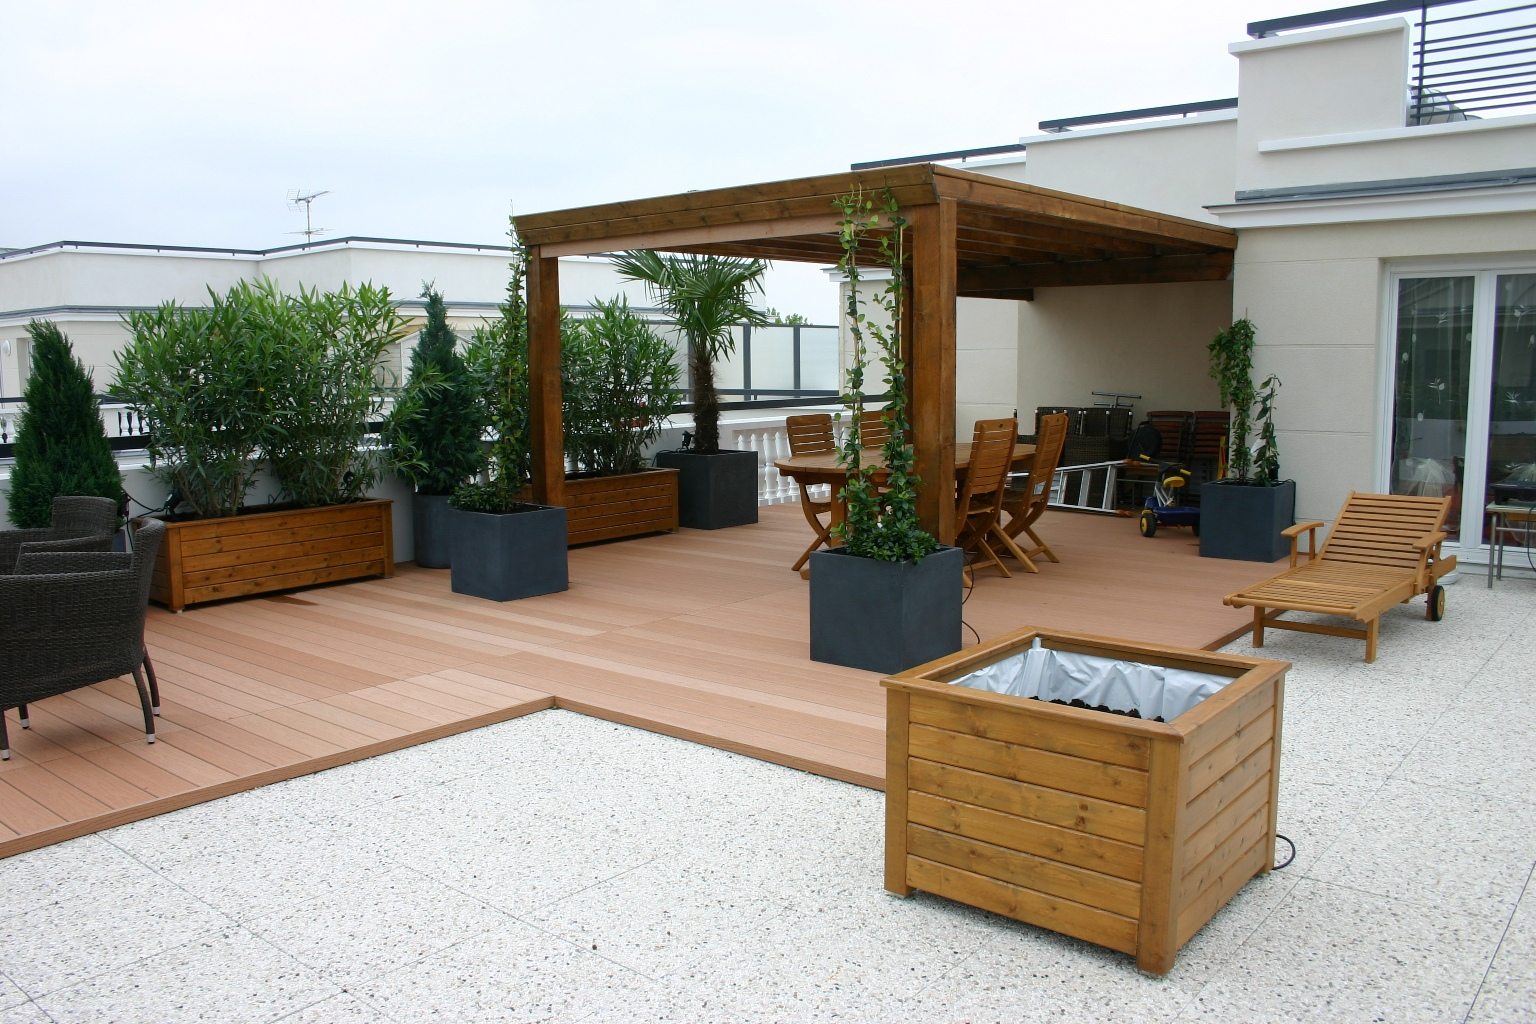 Comment am nager sa terrasse for Amenager un petit coin terrasse